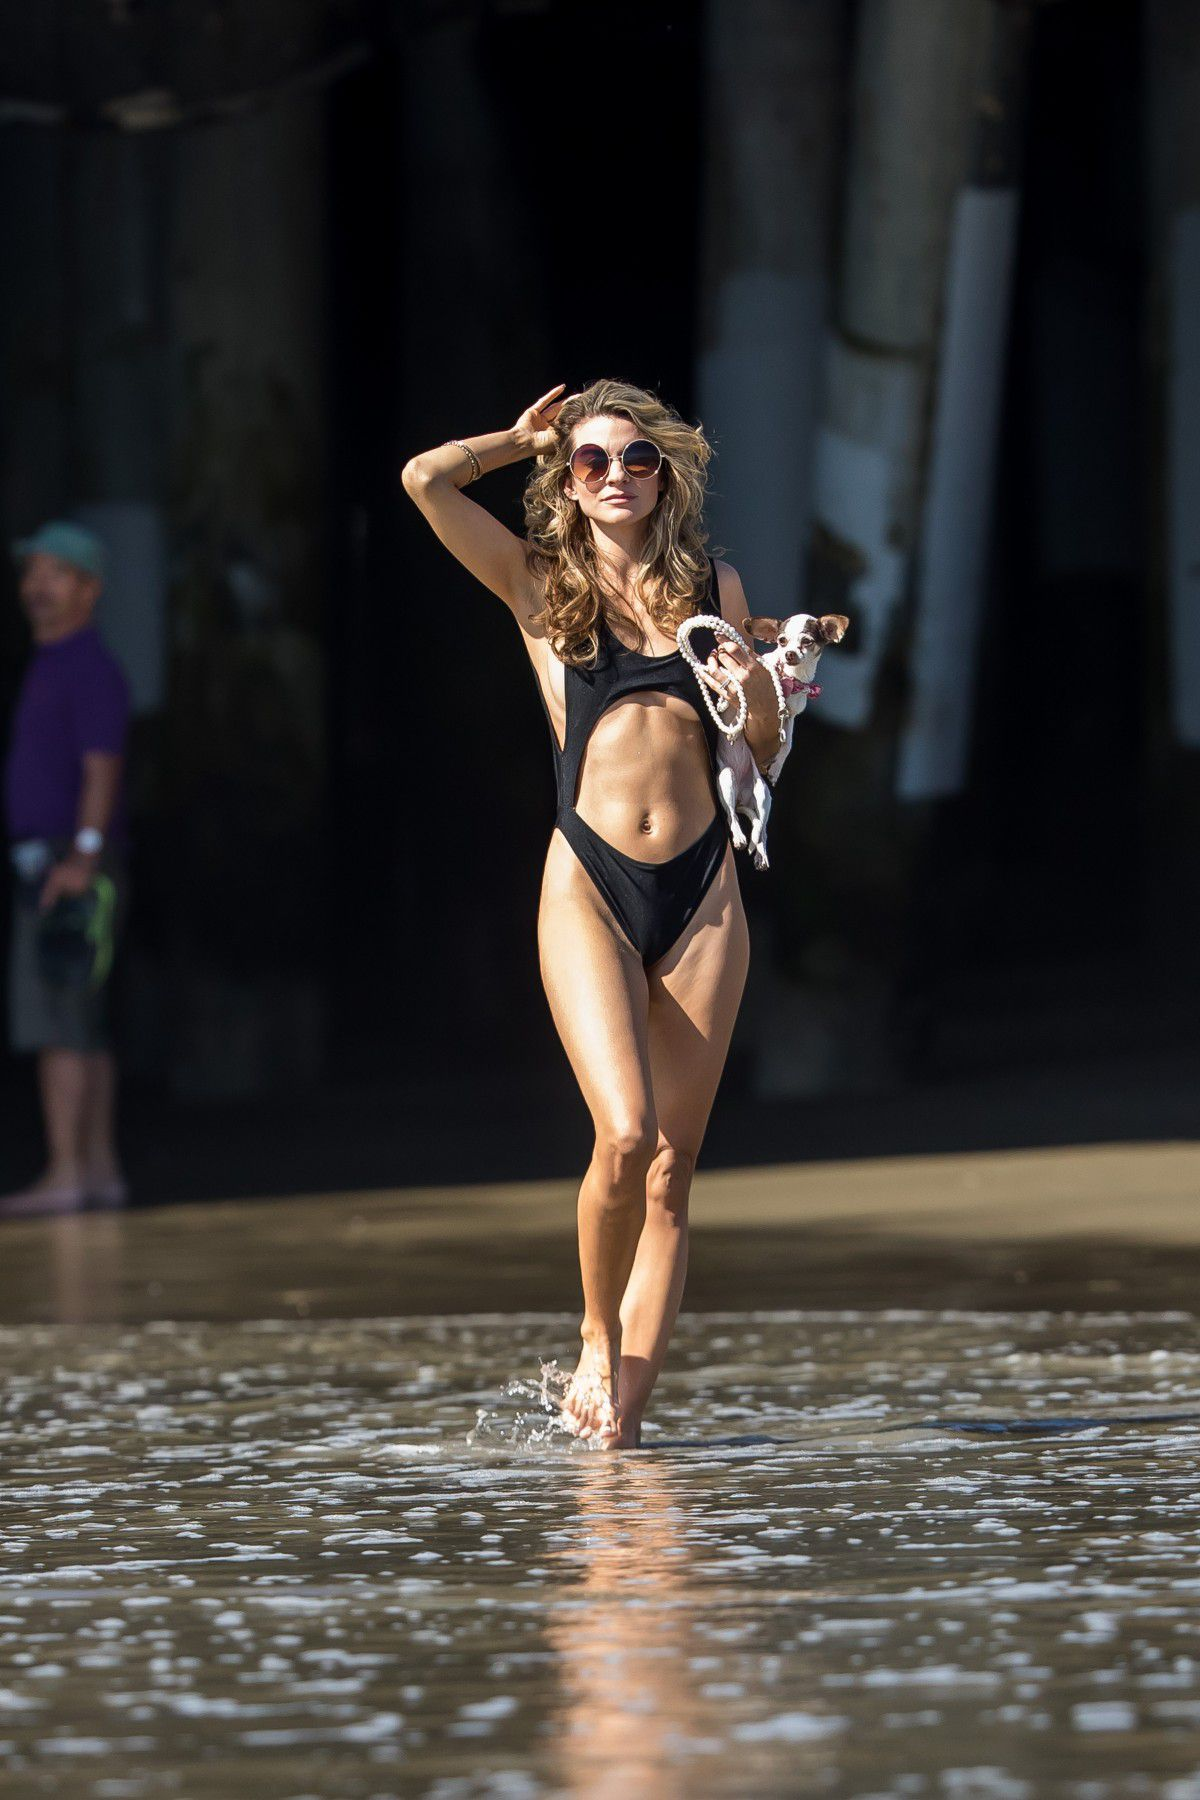 rachel-mccord-cameltoe-in-black-swimsuit-on-the-beach-in-santa-monica-9318